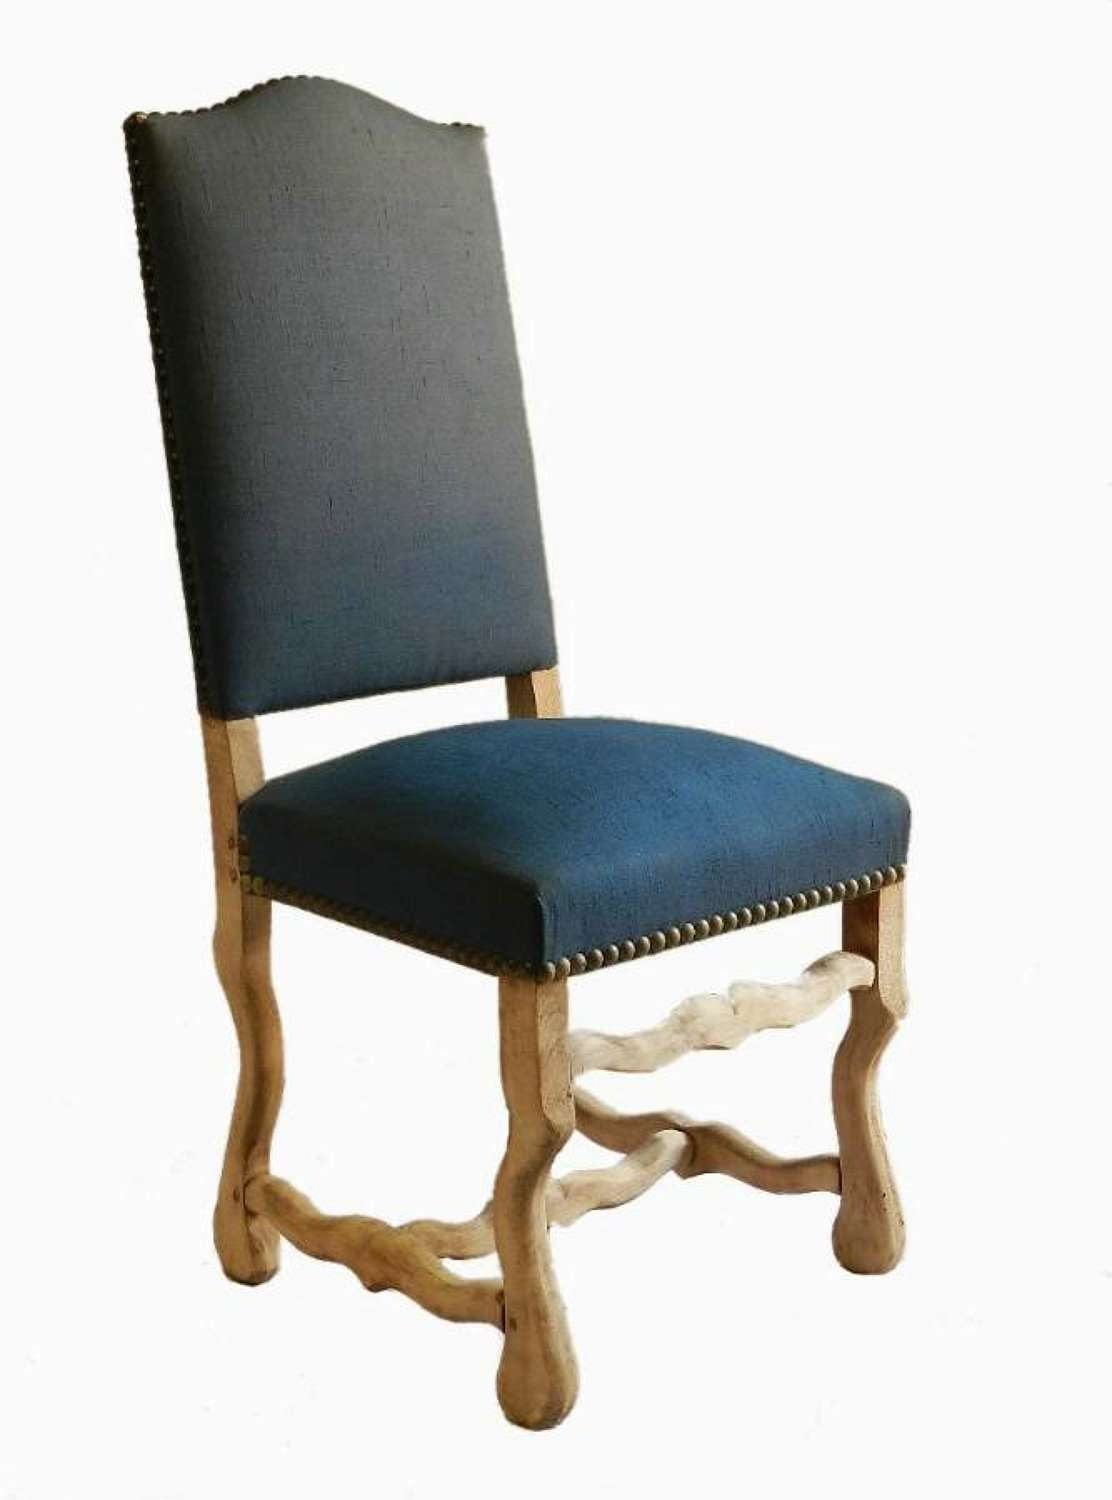 6 Os de Mouton Dining Chairs Bleached to recover